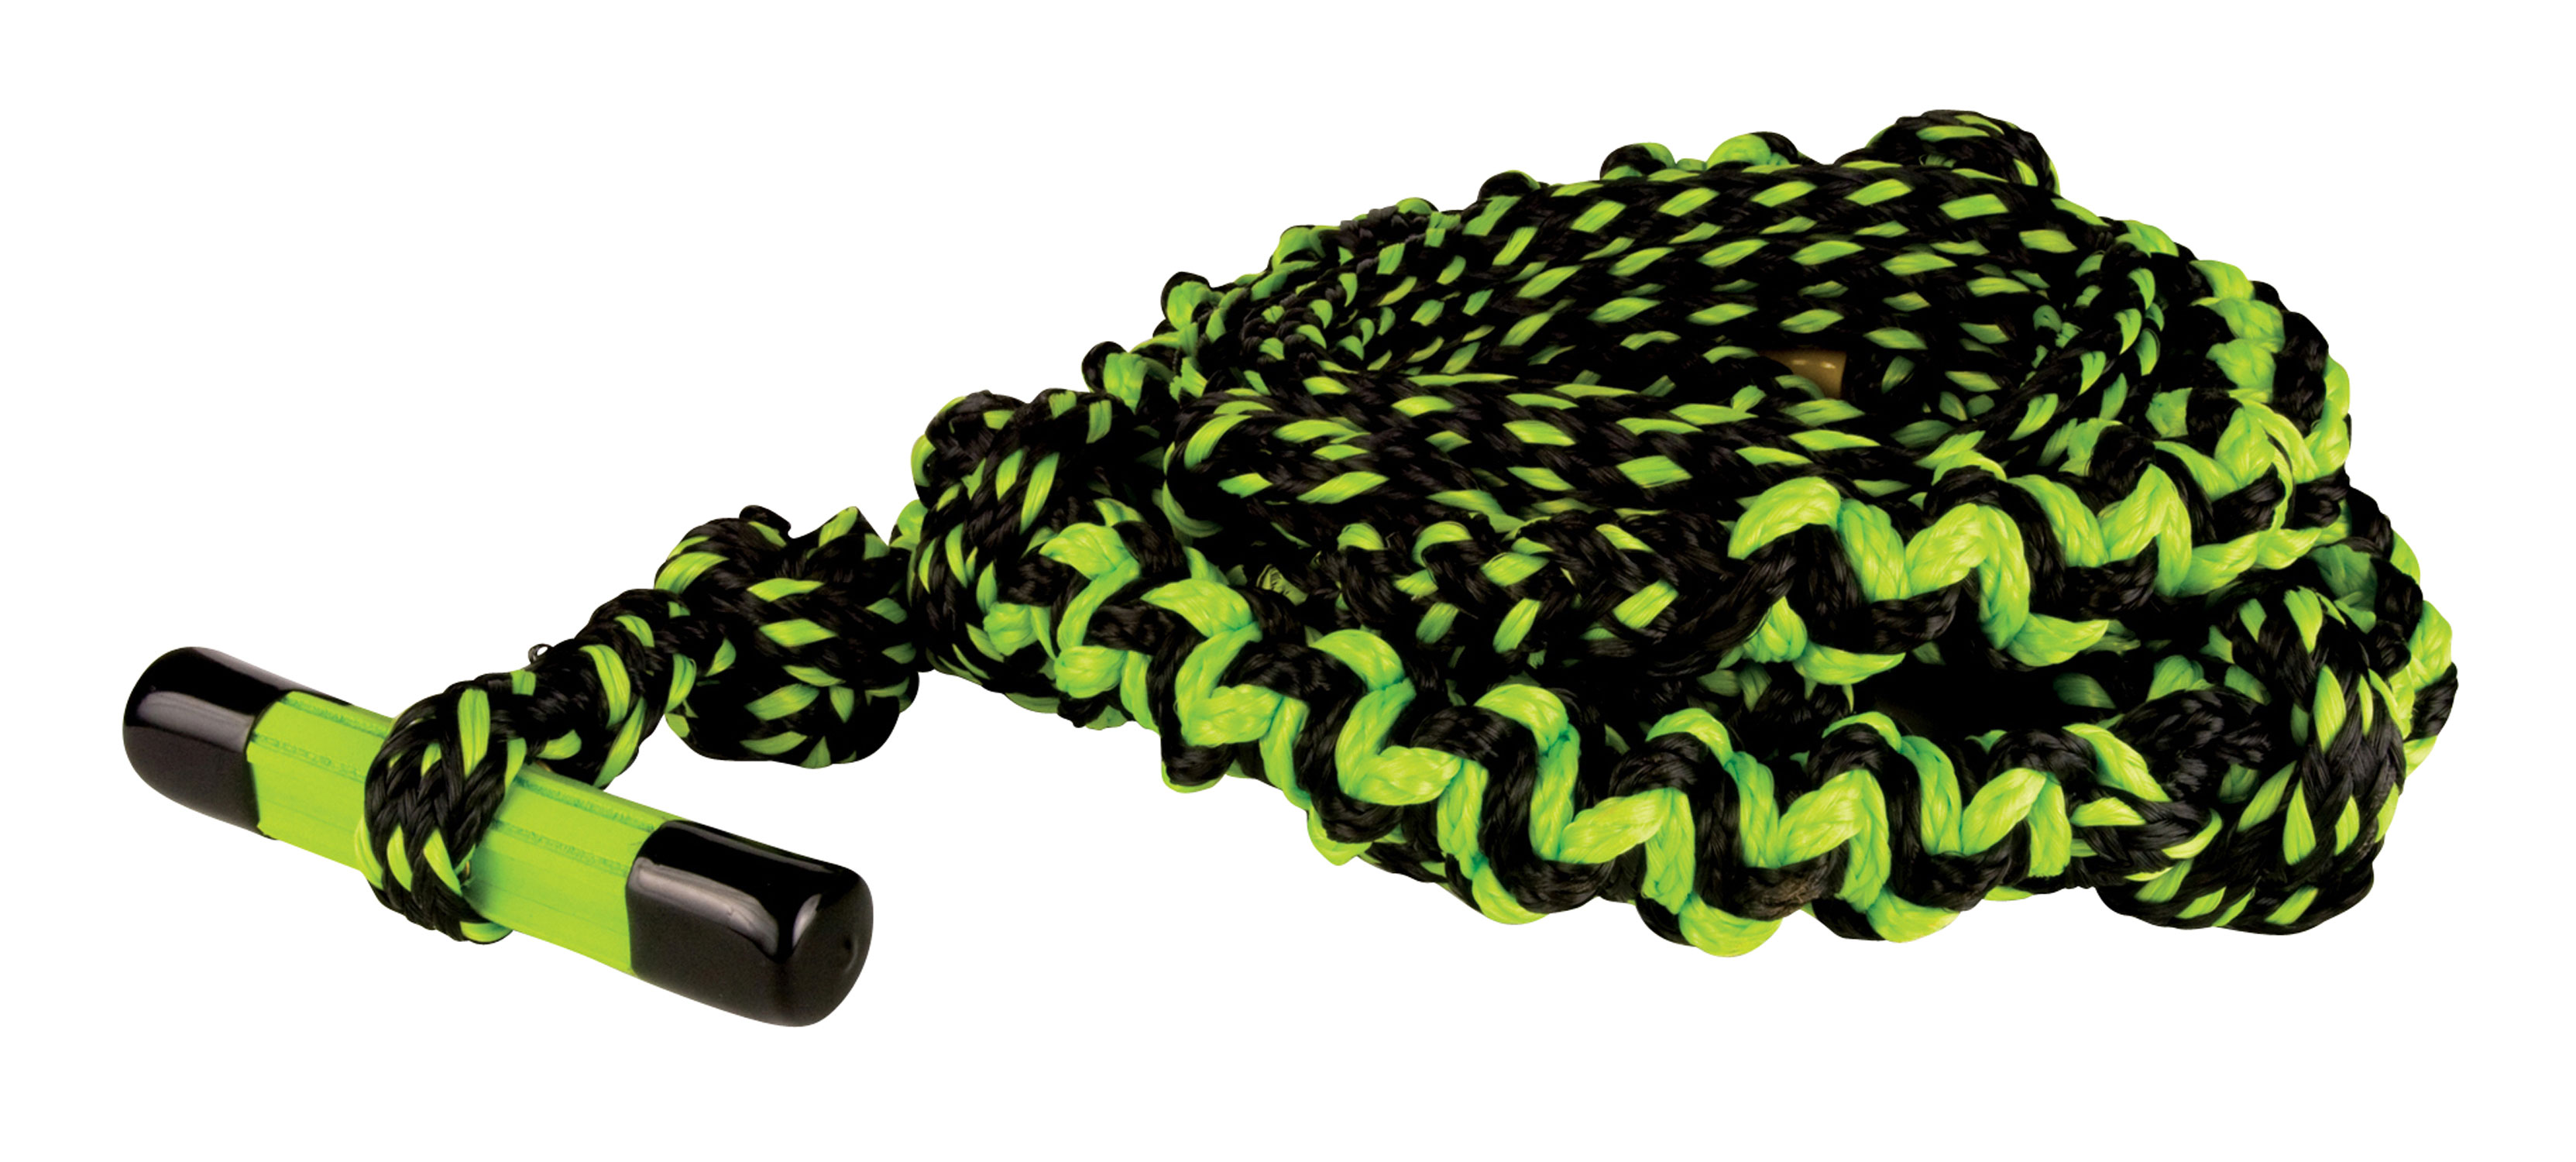 "Surf 9"" Handle: This is the performance surf rope/handle combo that is used by all of our Pro Shred team. Get up & drop into the pocket every time! T Grip: This rope is all about Safe, Wakesurfing fun! Slash the wake with ease using this Surf Rope. - $38.95"